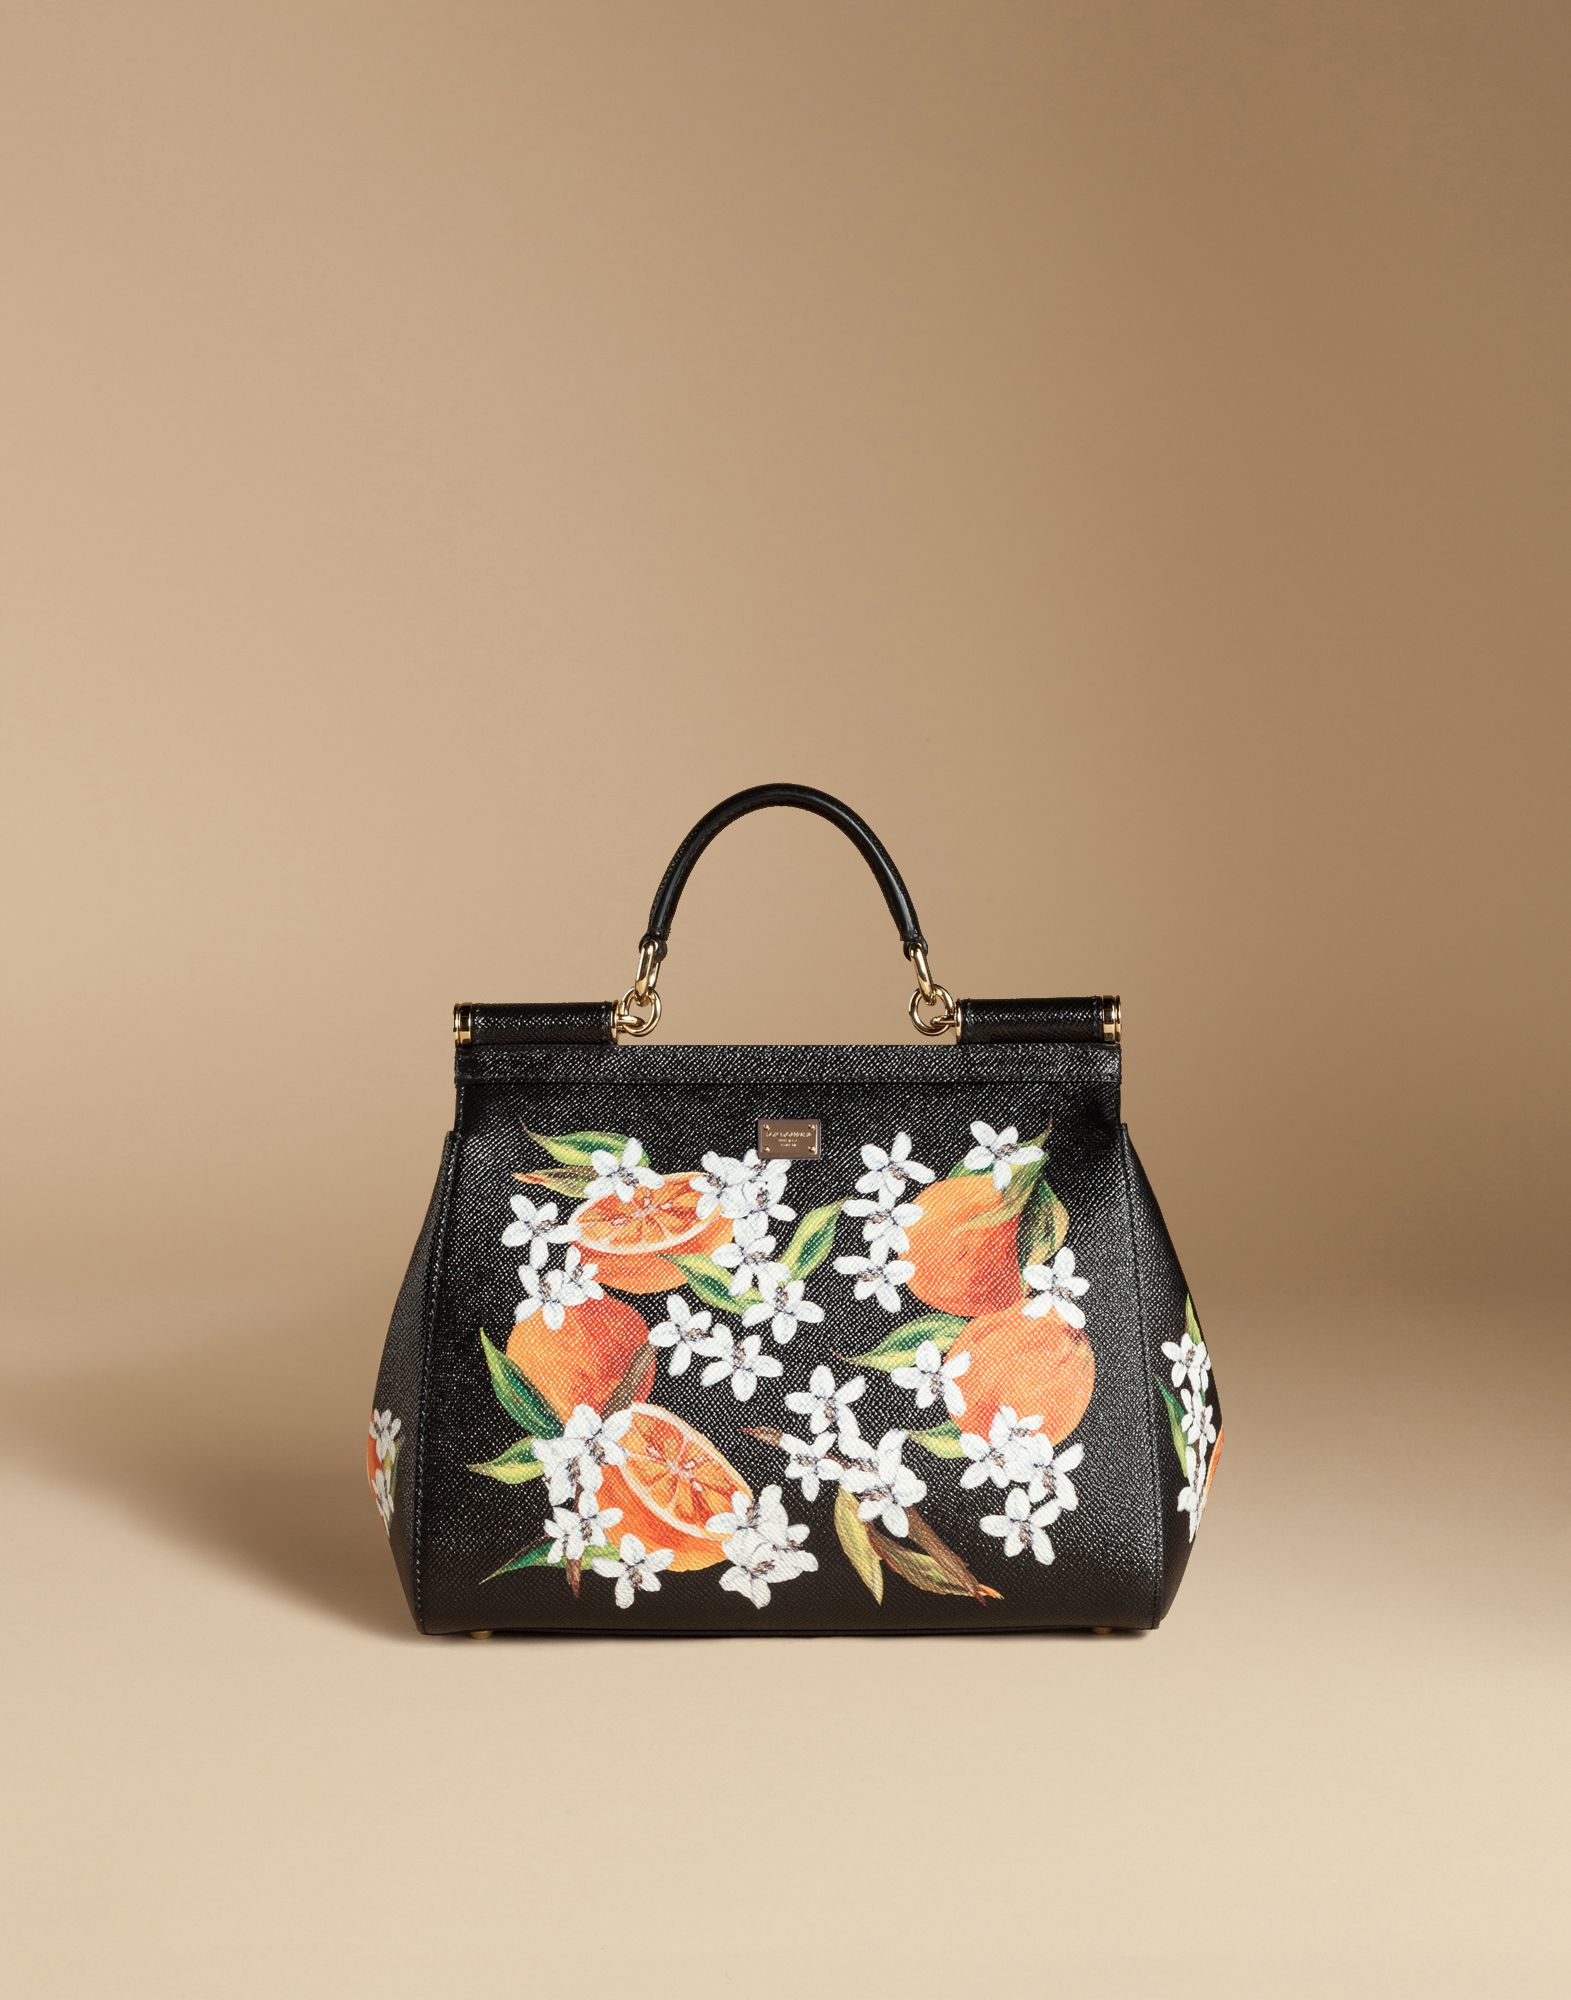 41b69899054a Lyst - Dolce   Gabbana Medium Sicily Bag In Printed Dauphine Leather ...